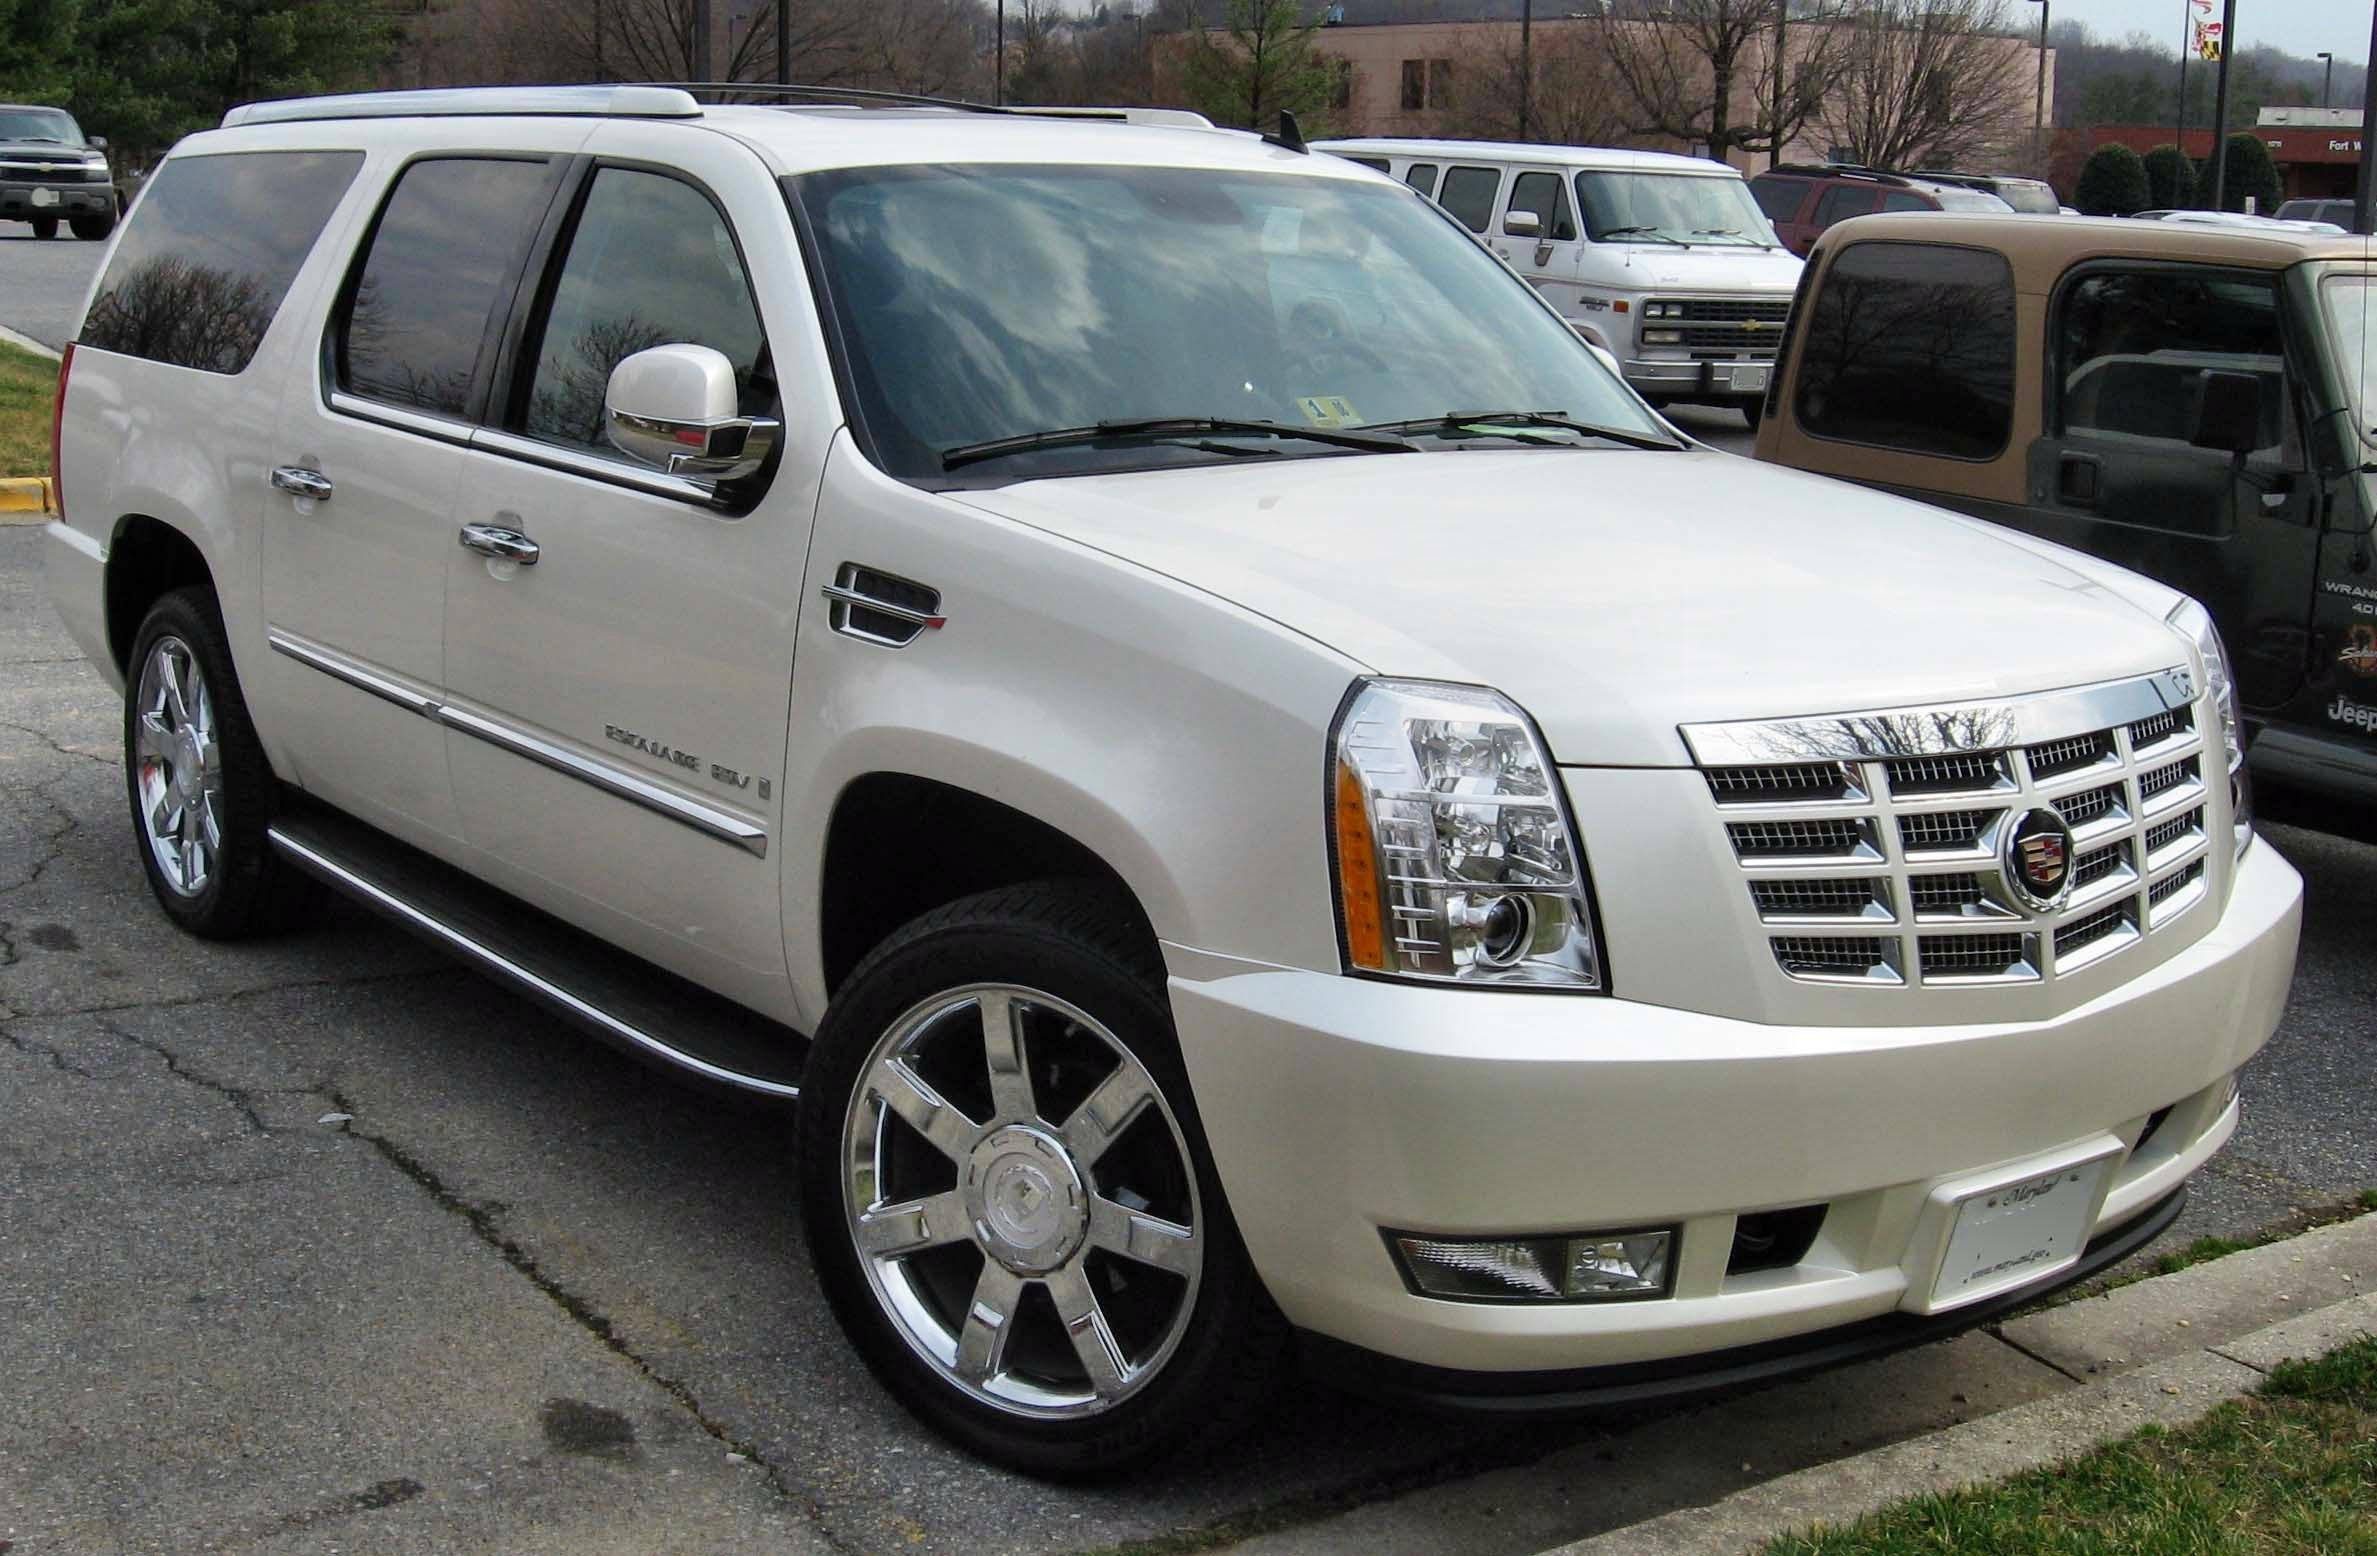 2012 Cadillac Escalade Platinum For Sale >> File:2007-Cadillac-Escalade-ESV.jpg - Wikimedia Commons